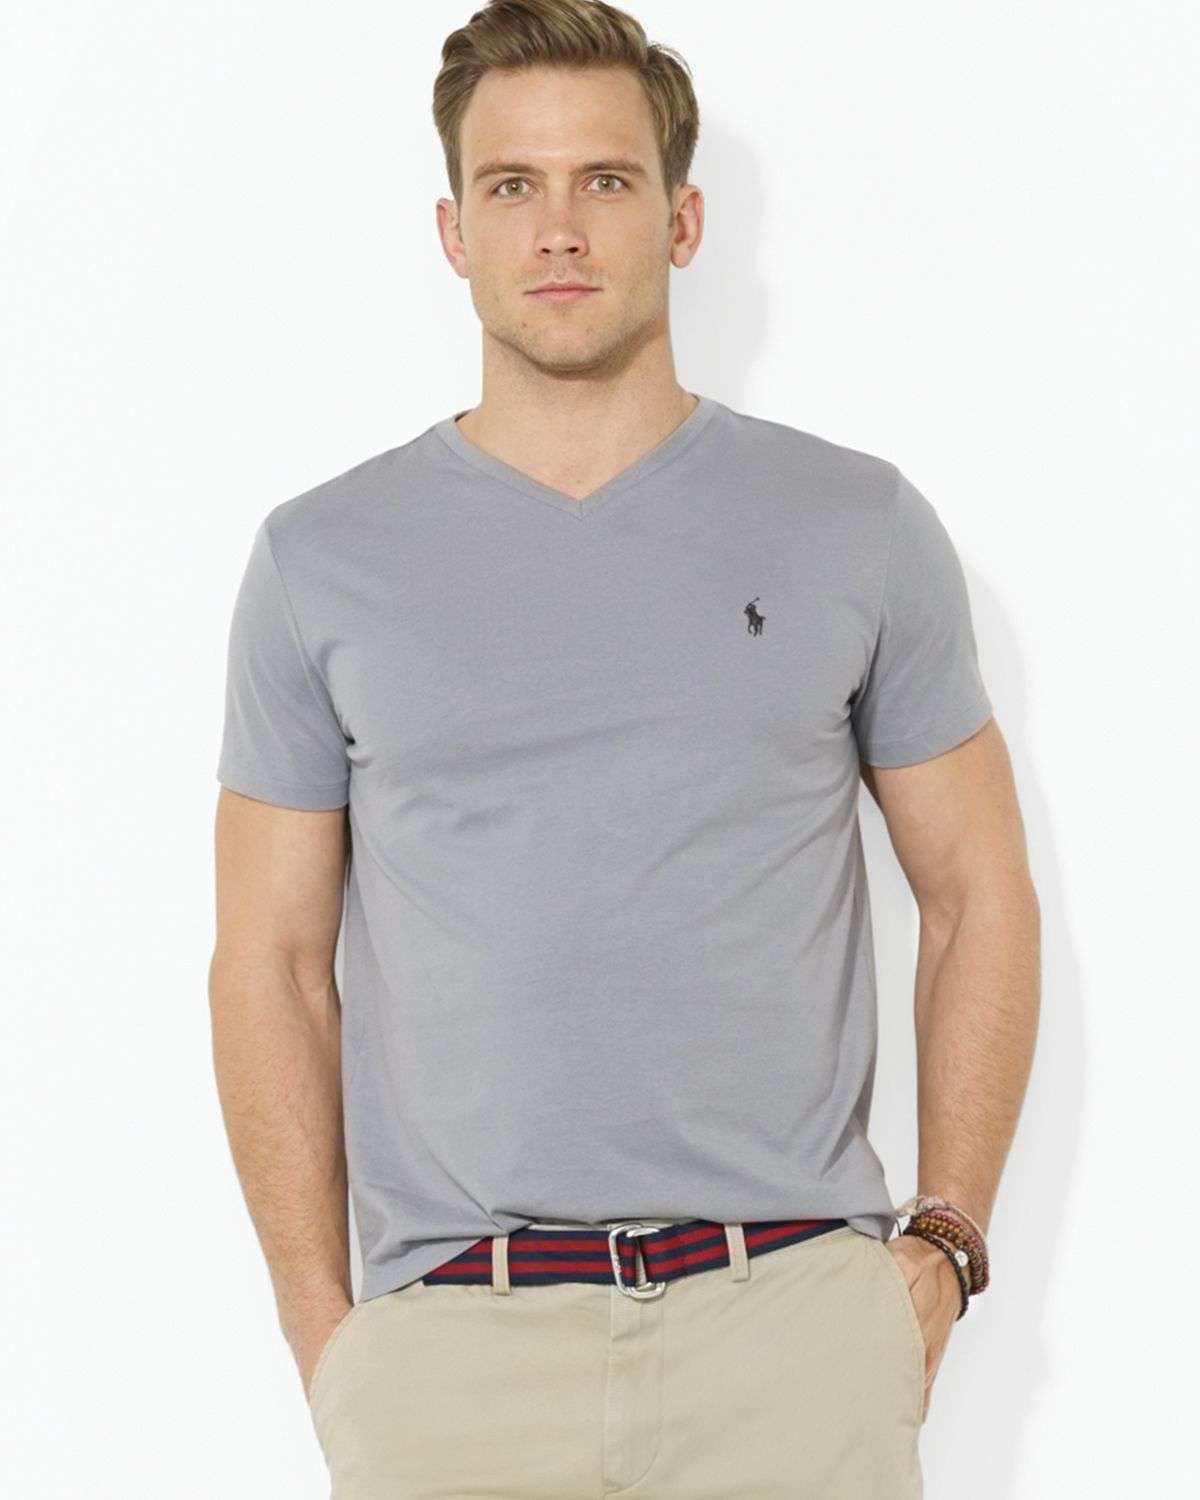 polo ralph lauren short sleeve cotton jersey v neck tee in